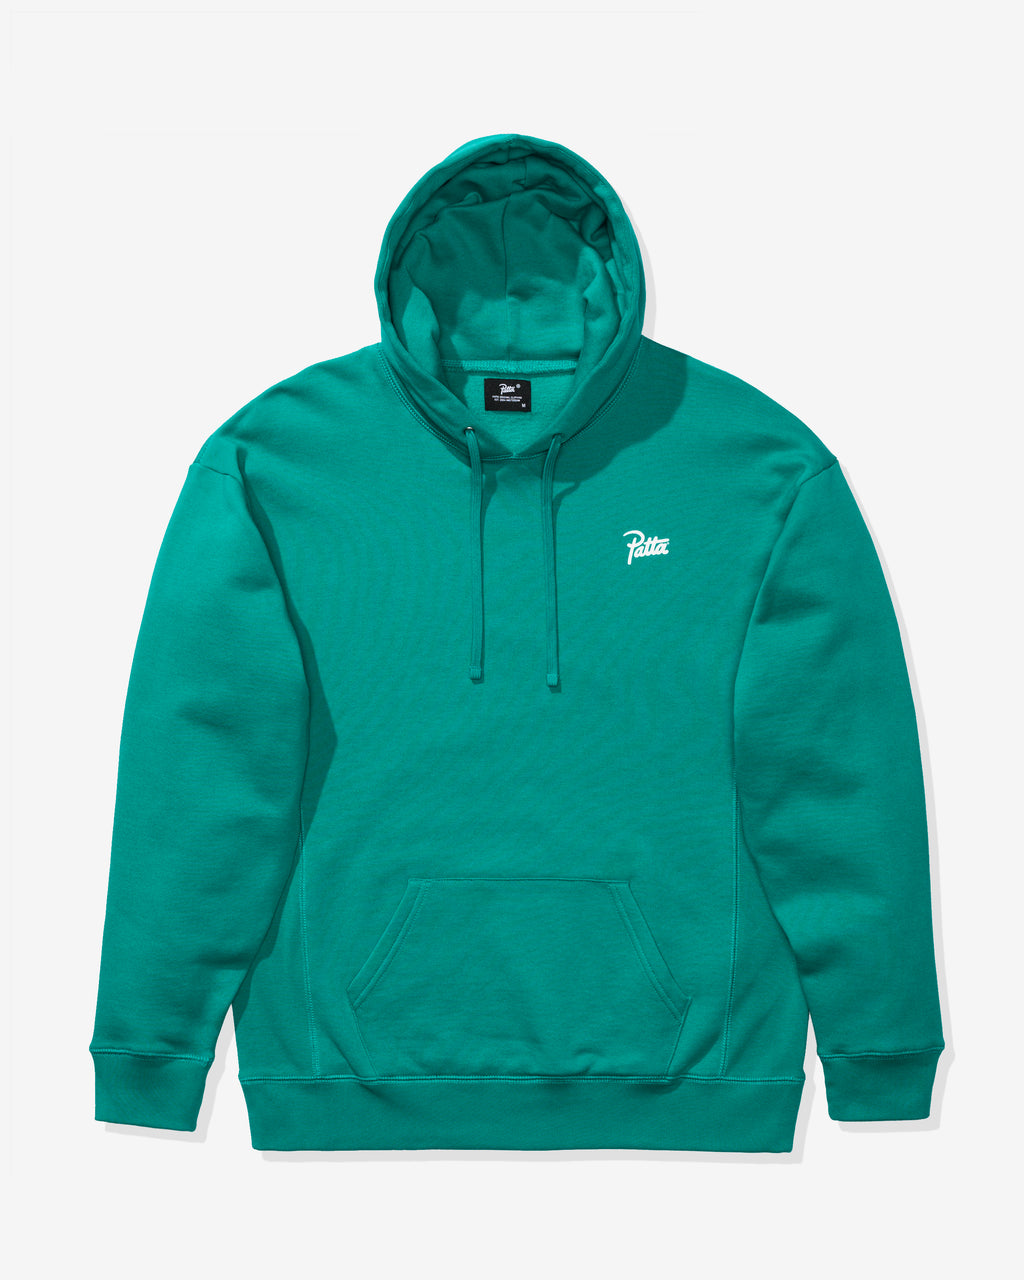 PATTA BASIC SUMMER HOODED SWEATER - COLUMBIA